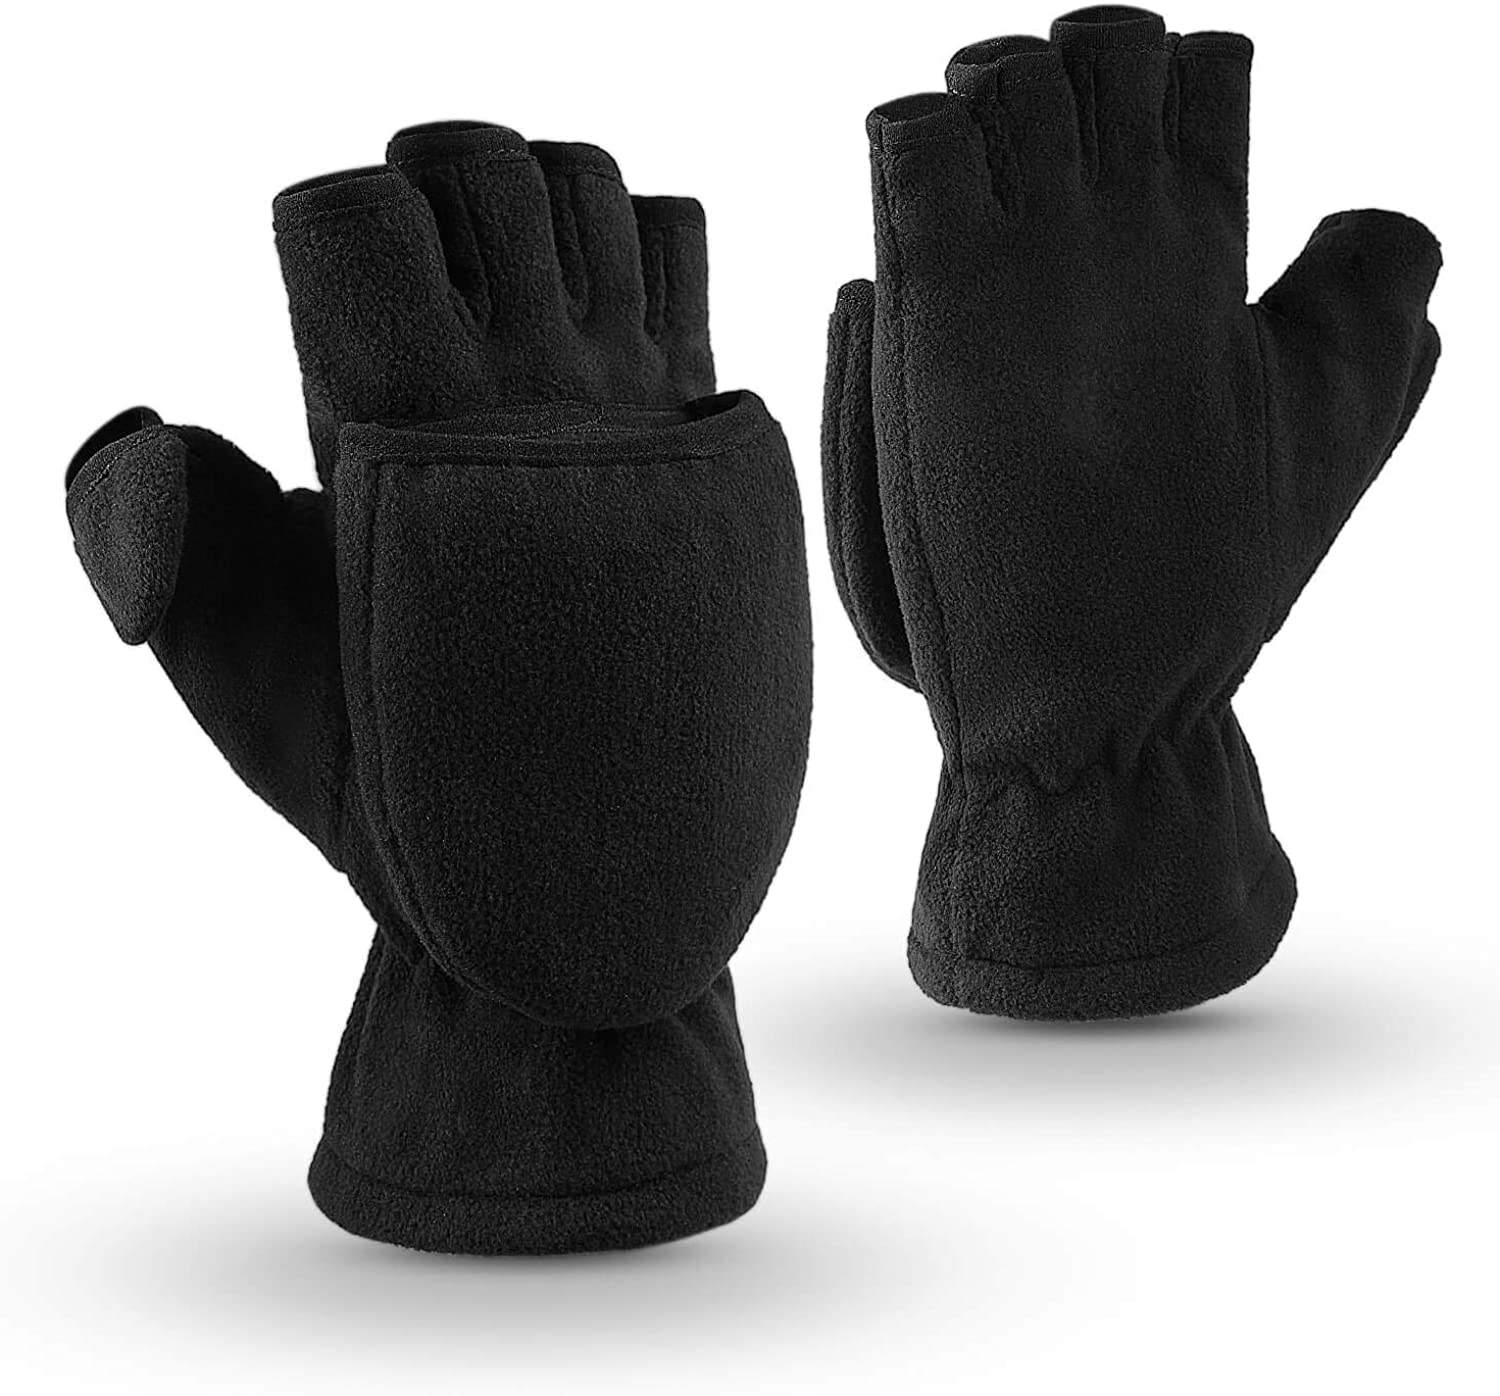 OZERO Winter Gloves 3M Thinsulate Fingerless Convertible Thermal Mittens Windproof Insulated Polar Fleece Warm for Men and Women Black